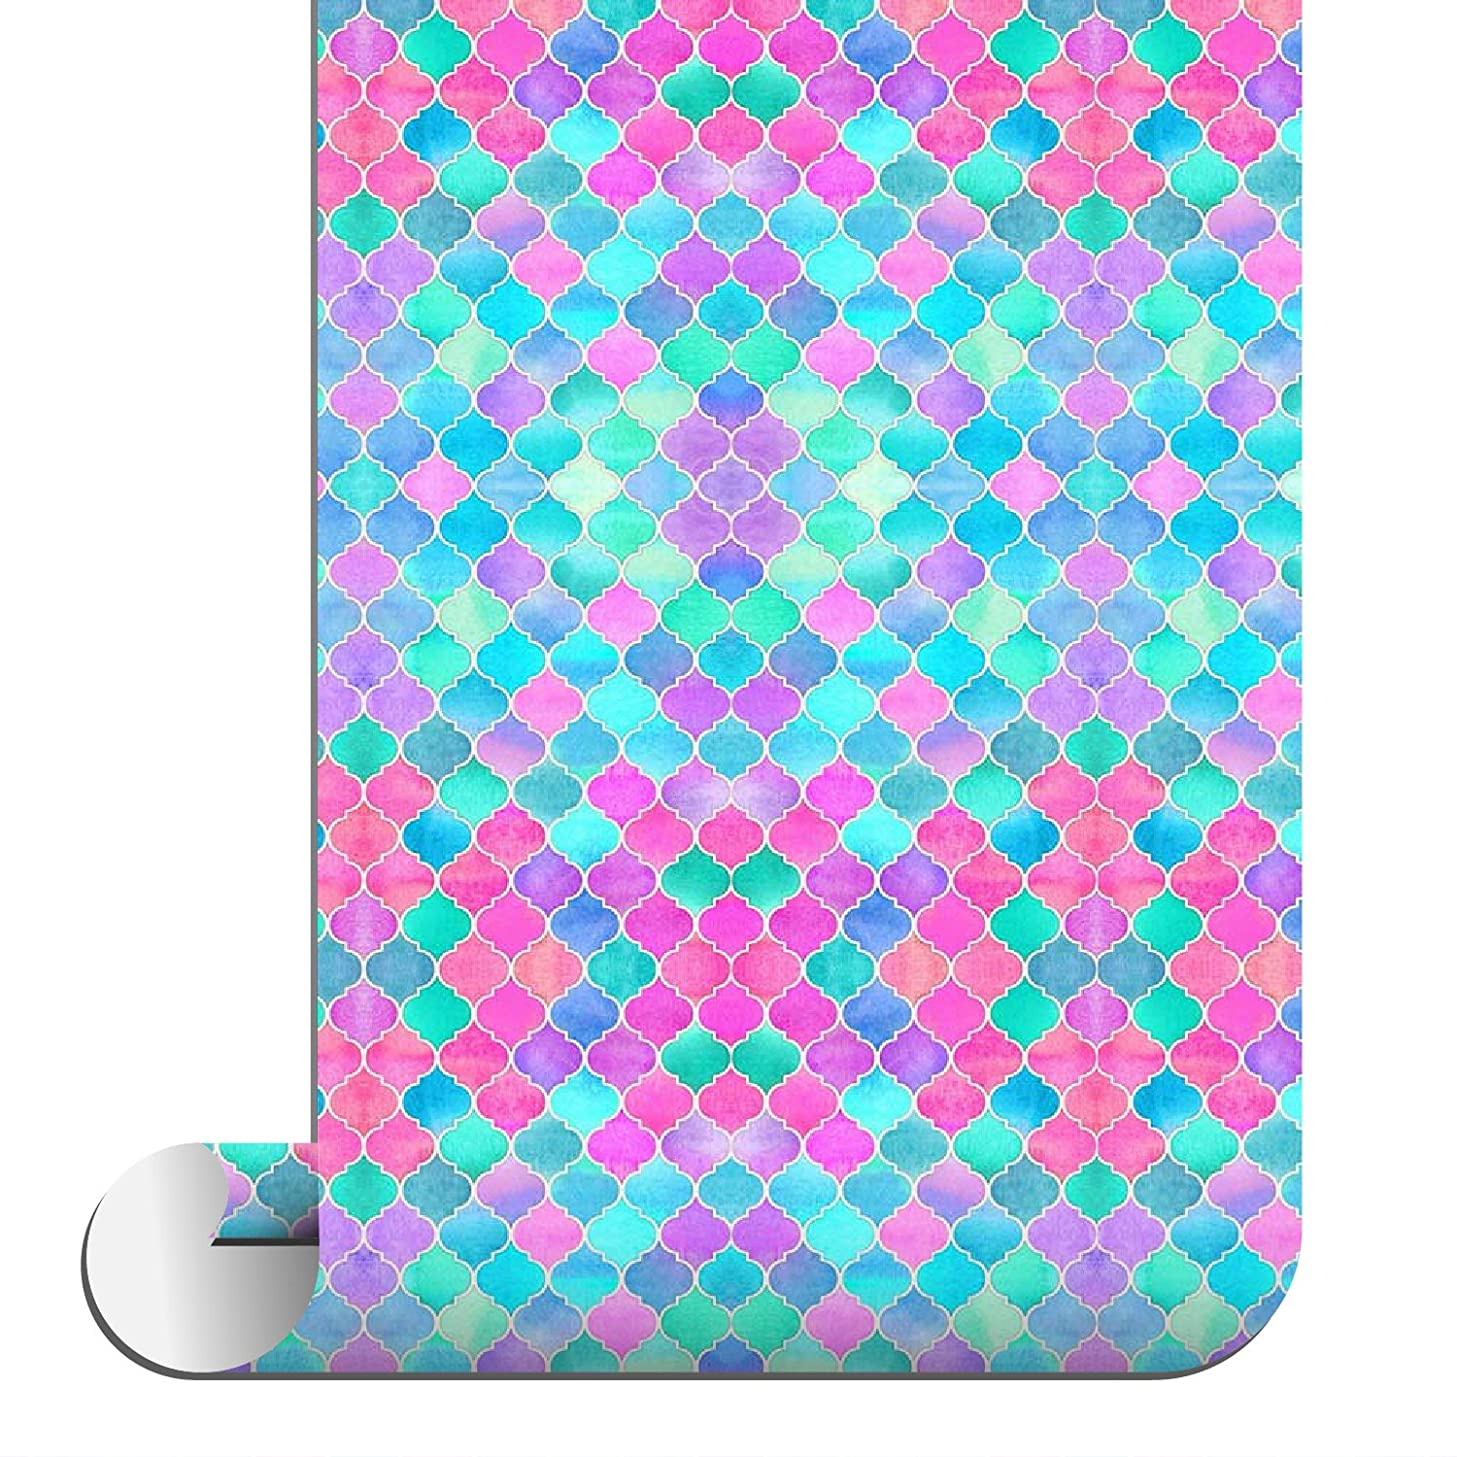 Sparkleberry Ink Adhesive Oracal 651 Patterned Vinyl, 12